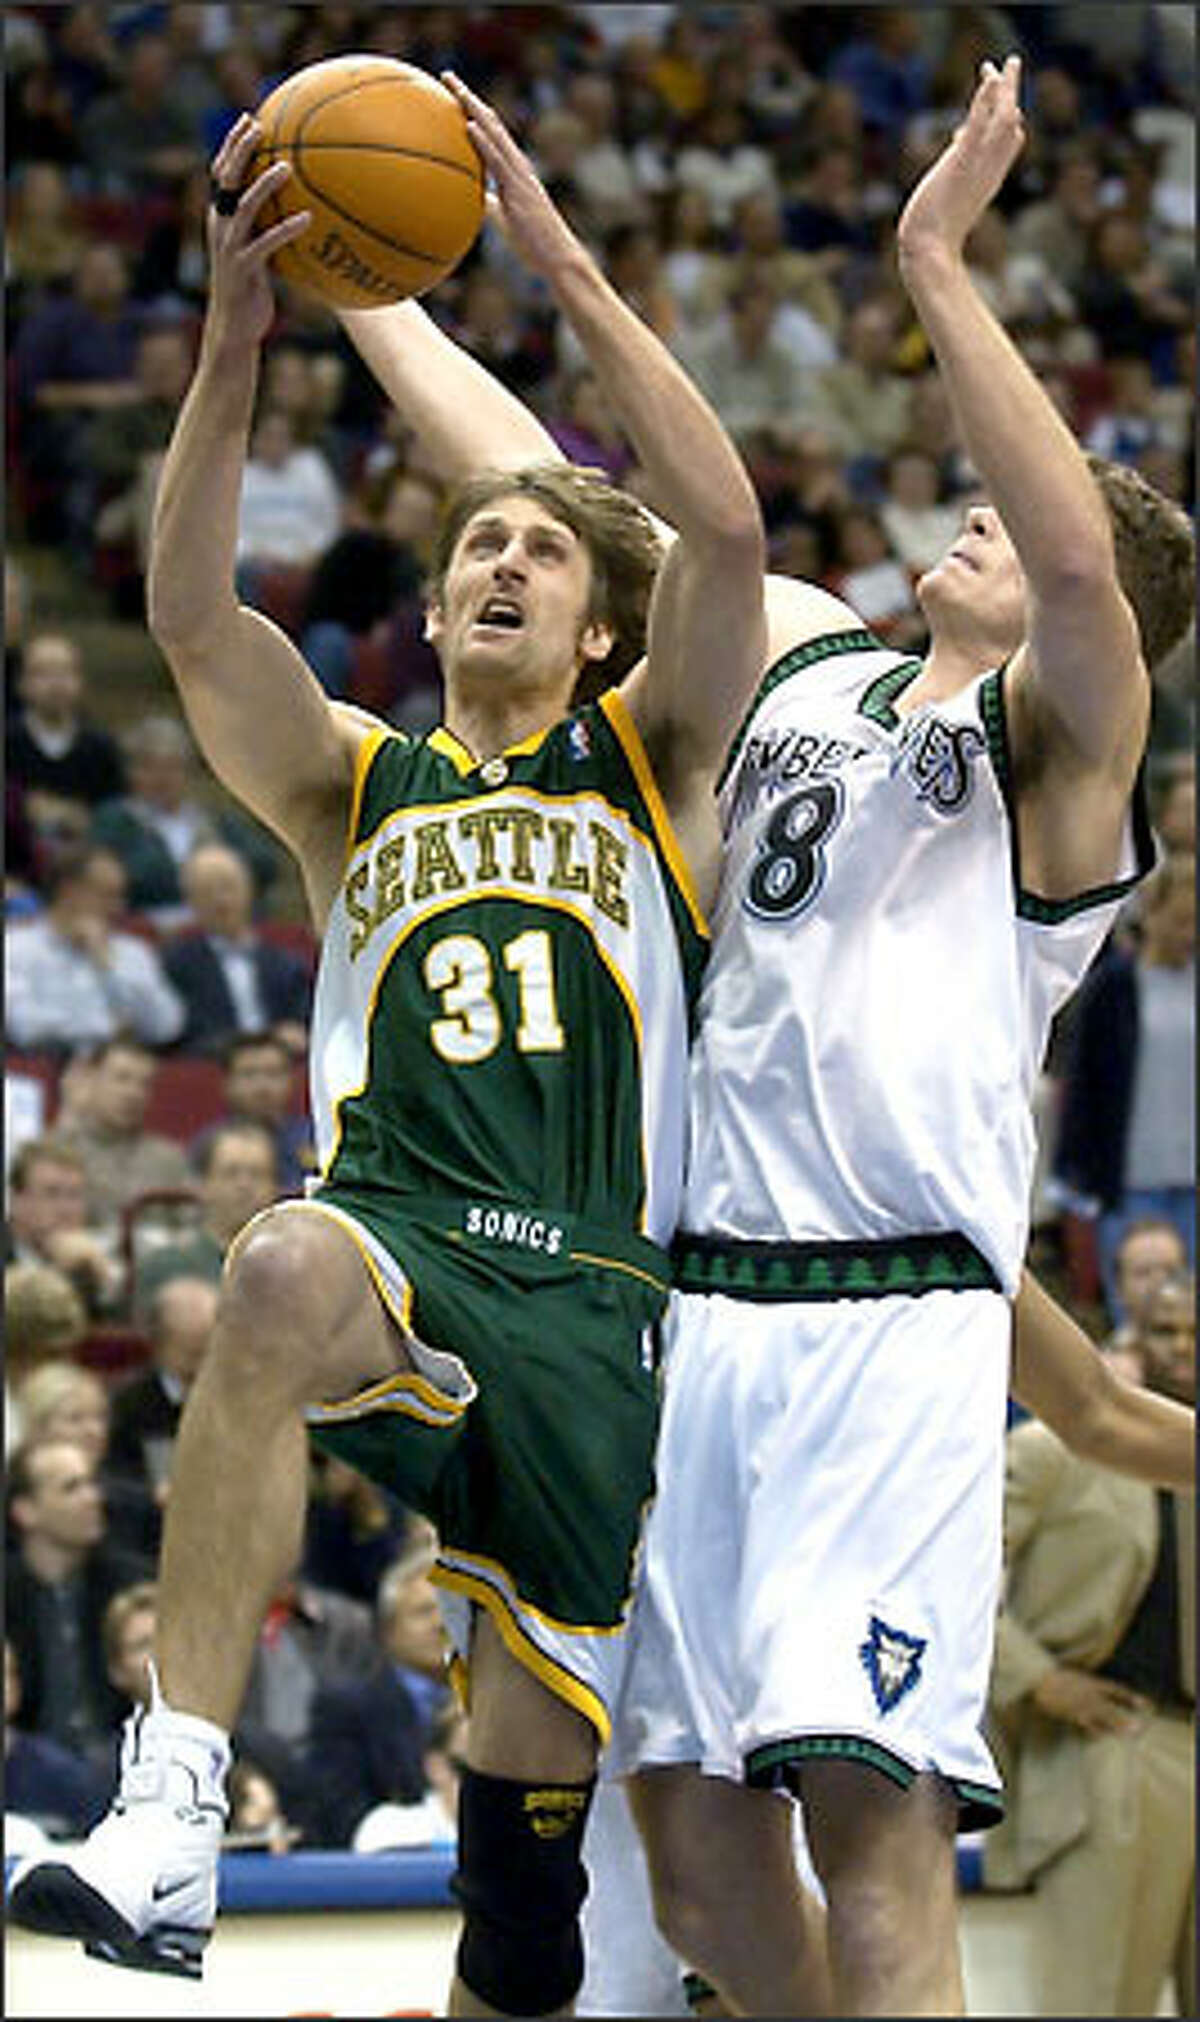 Brent Barry goes up for a shot against Timberwolves center Radoslav Nesterovic. Barry scored 11 points in 32 minutes.